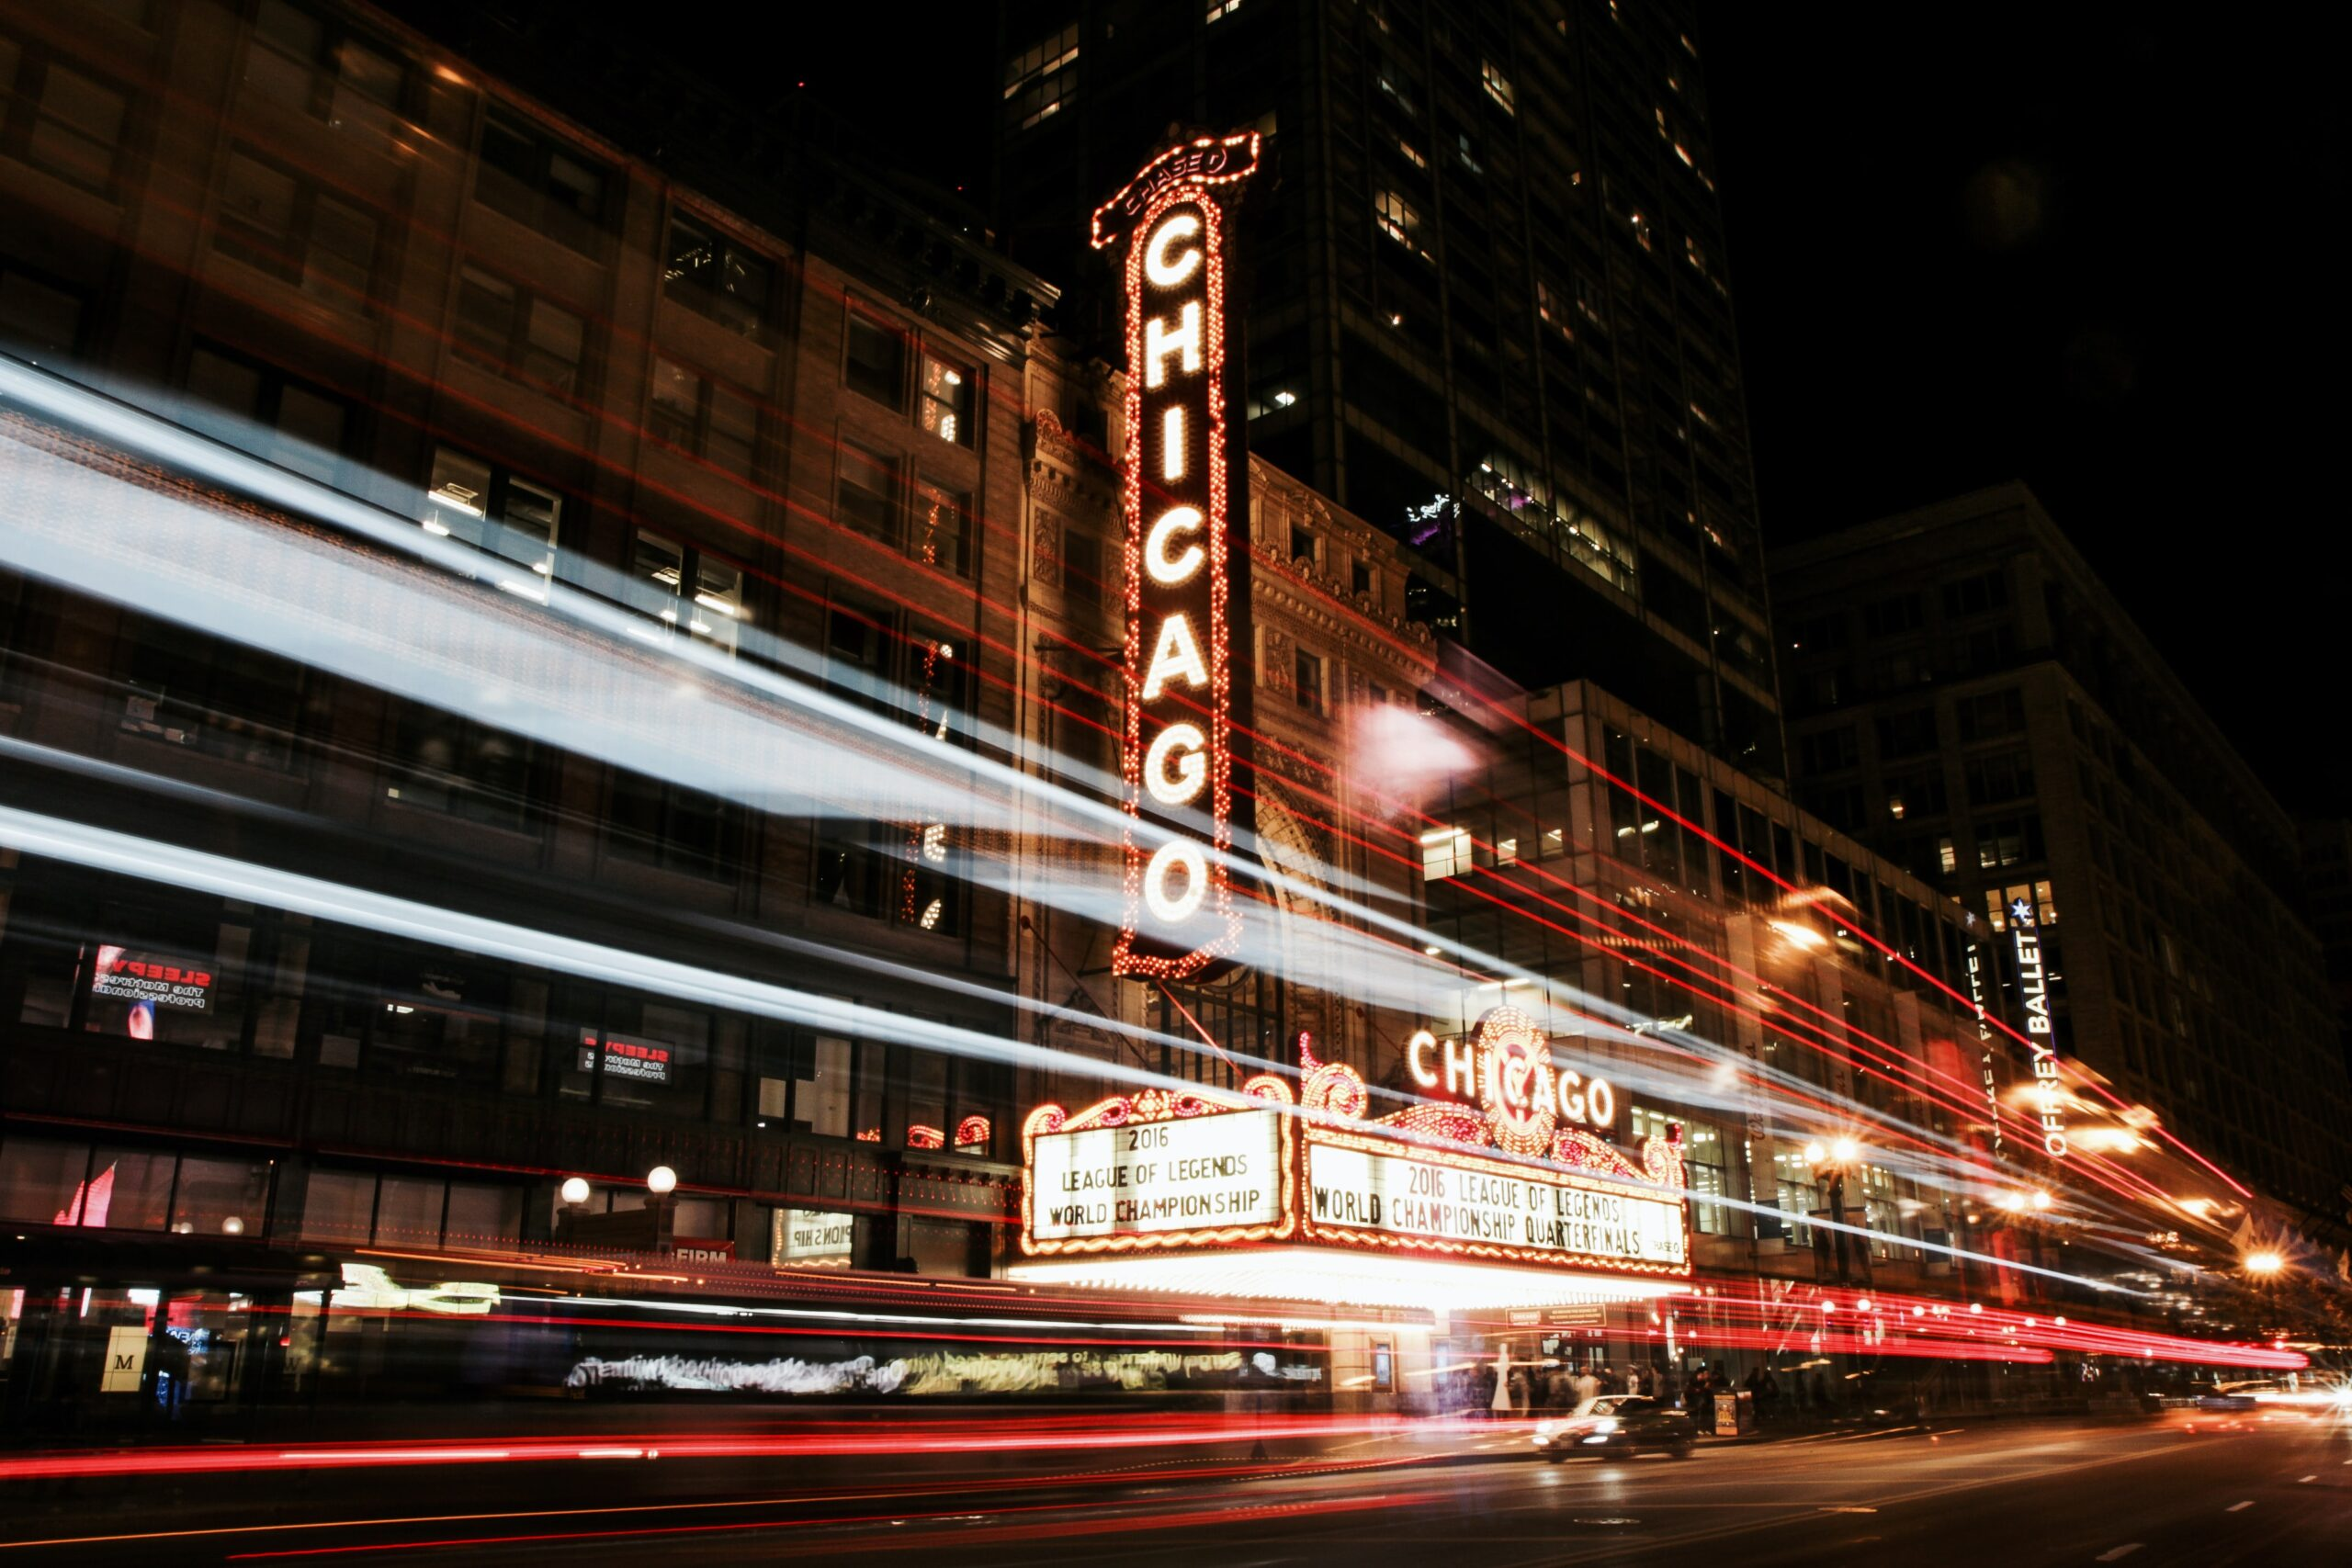 Top Attractions to See in One Glorious Day in Chicago